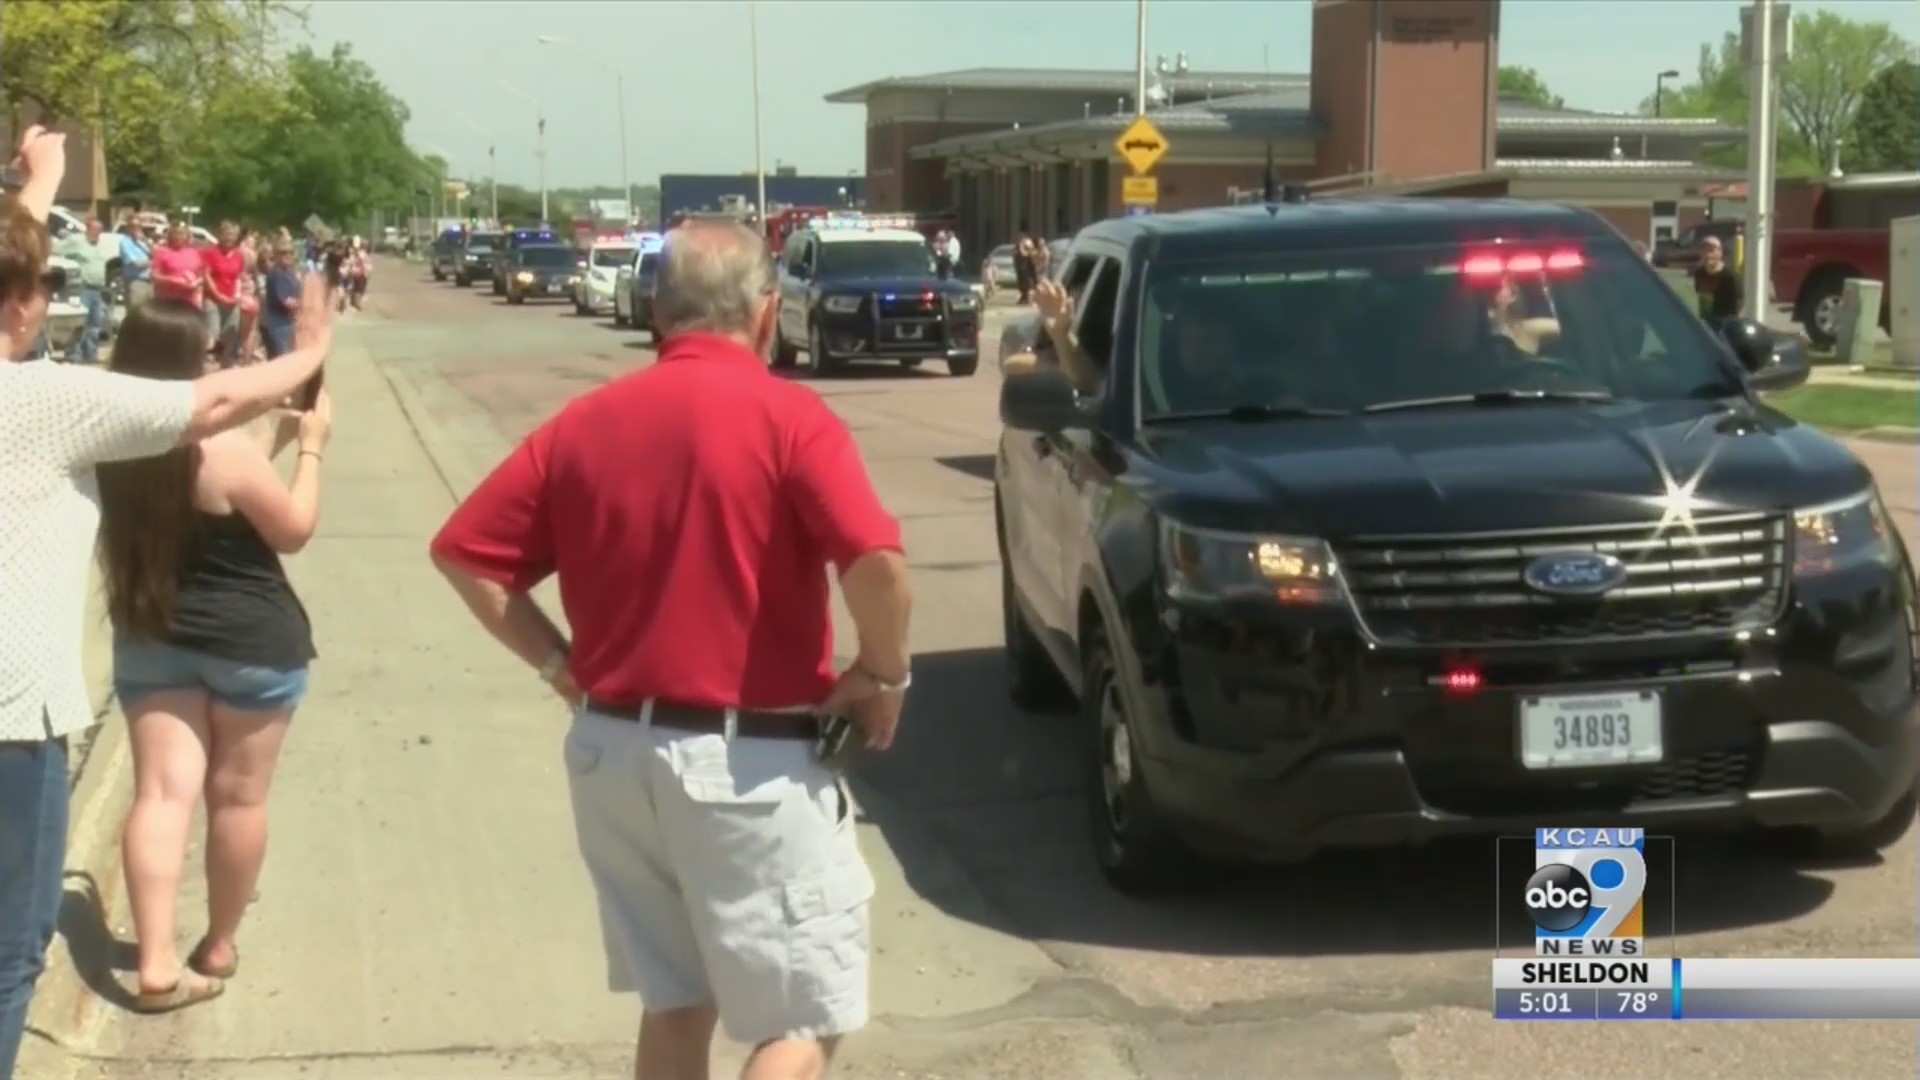 South Sioux City welcomes home injured officer